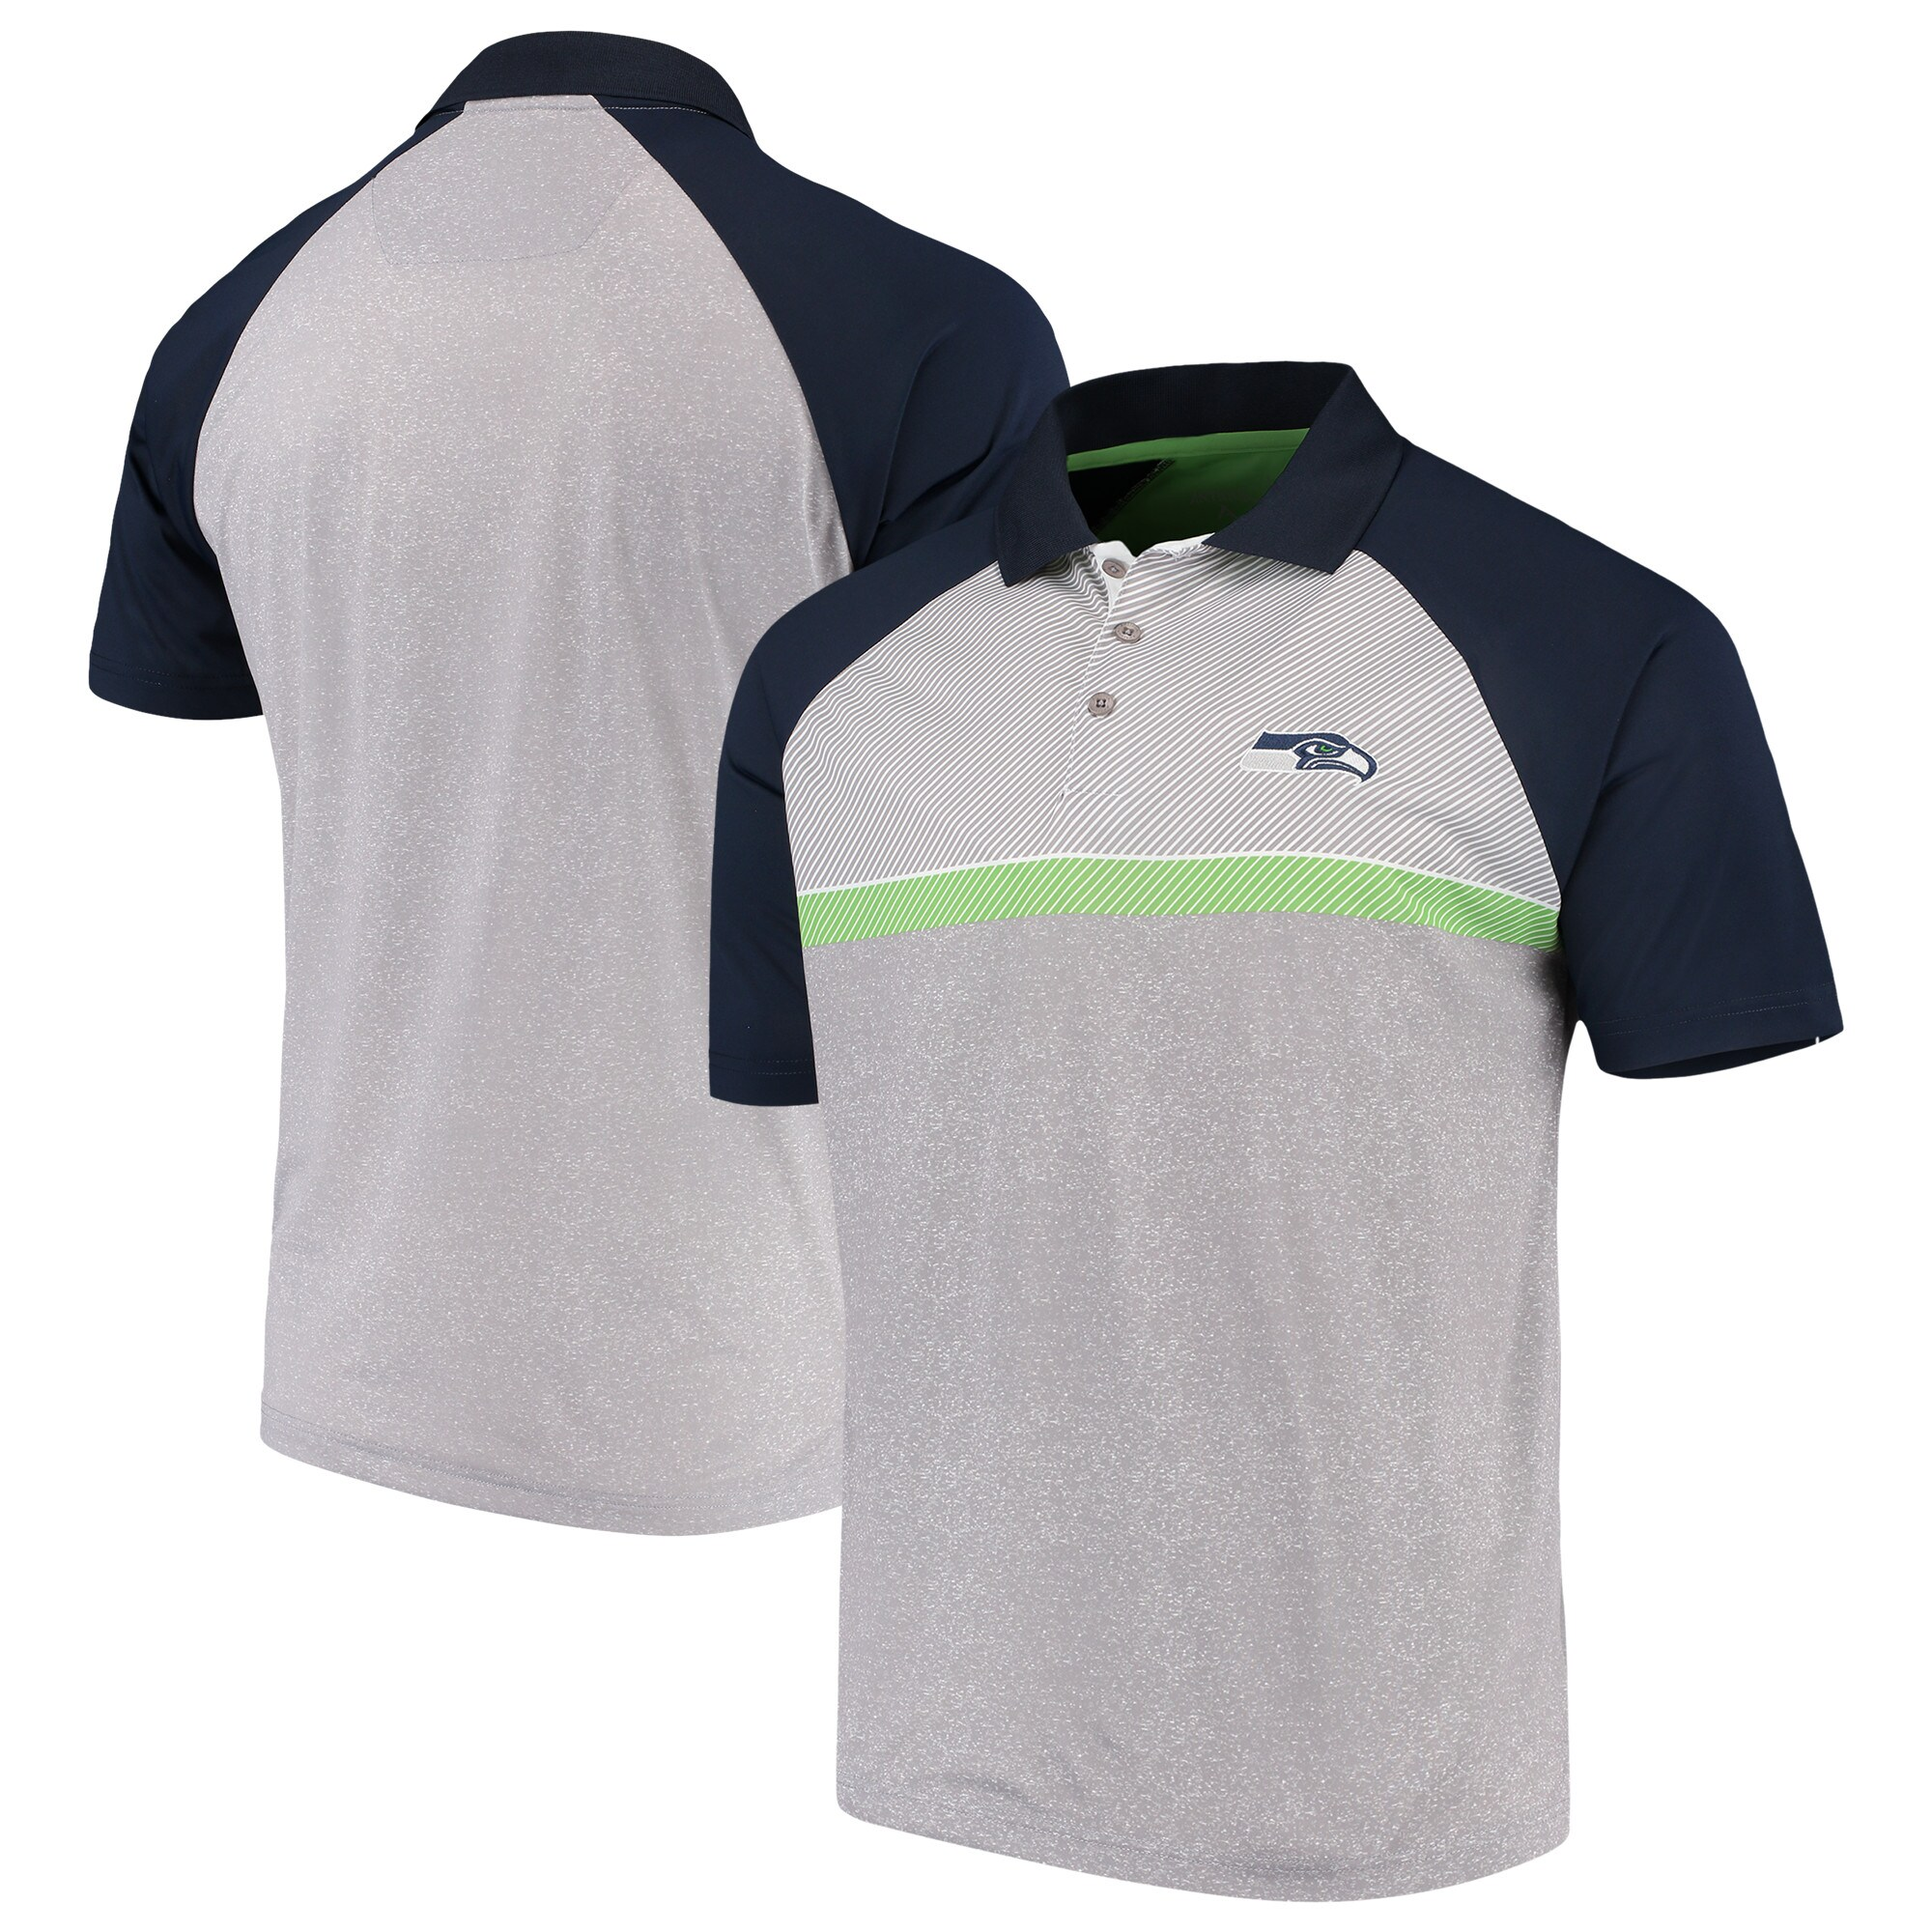 Seattle Seahawks Antigua Momentum Polo - Gray/College Navy